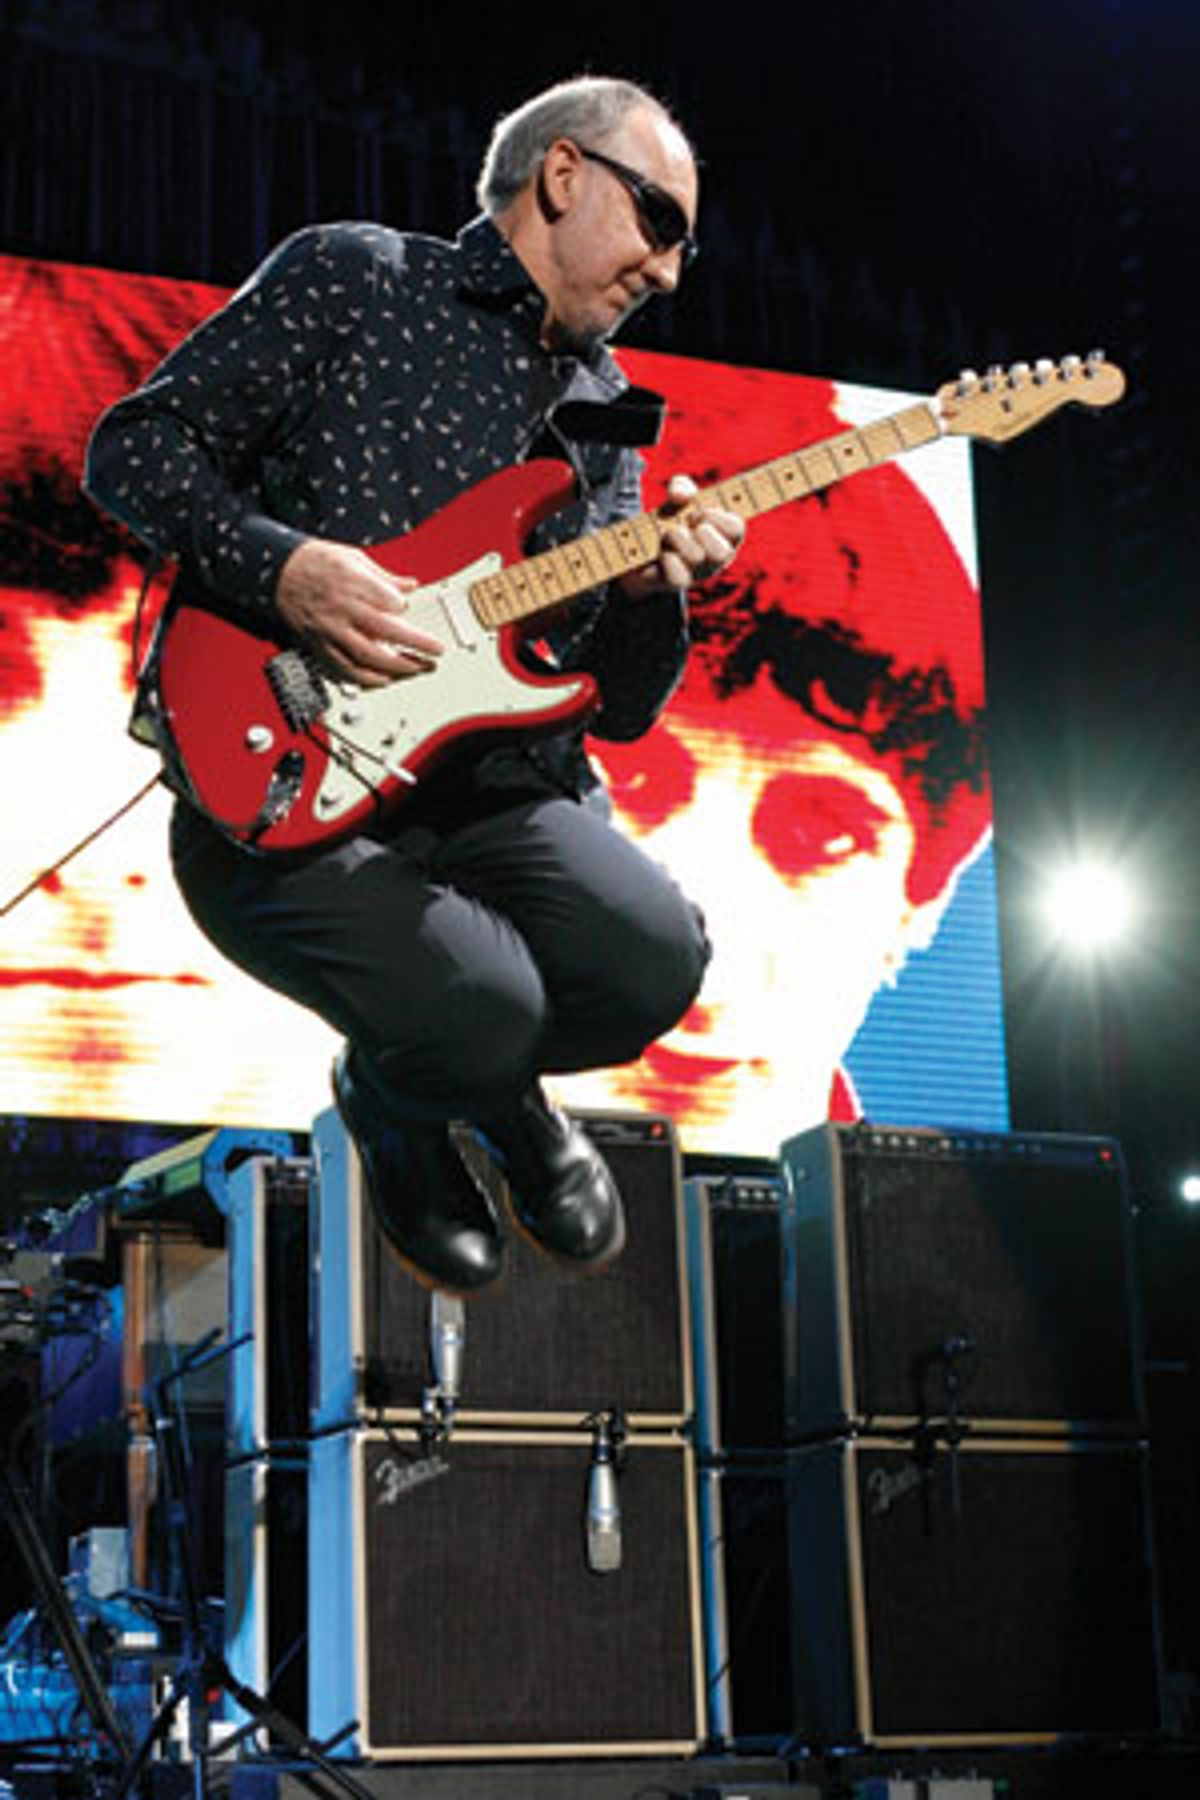 Pete Townshend: On Guitar-Smashing Regrets, Stylistic Evolution, and Becoming a Gear Aficionado